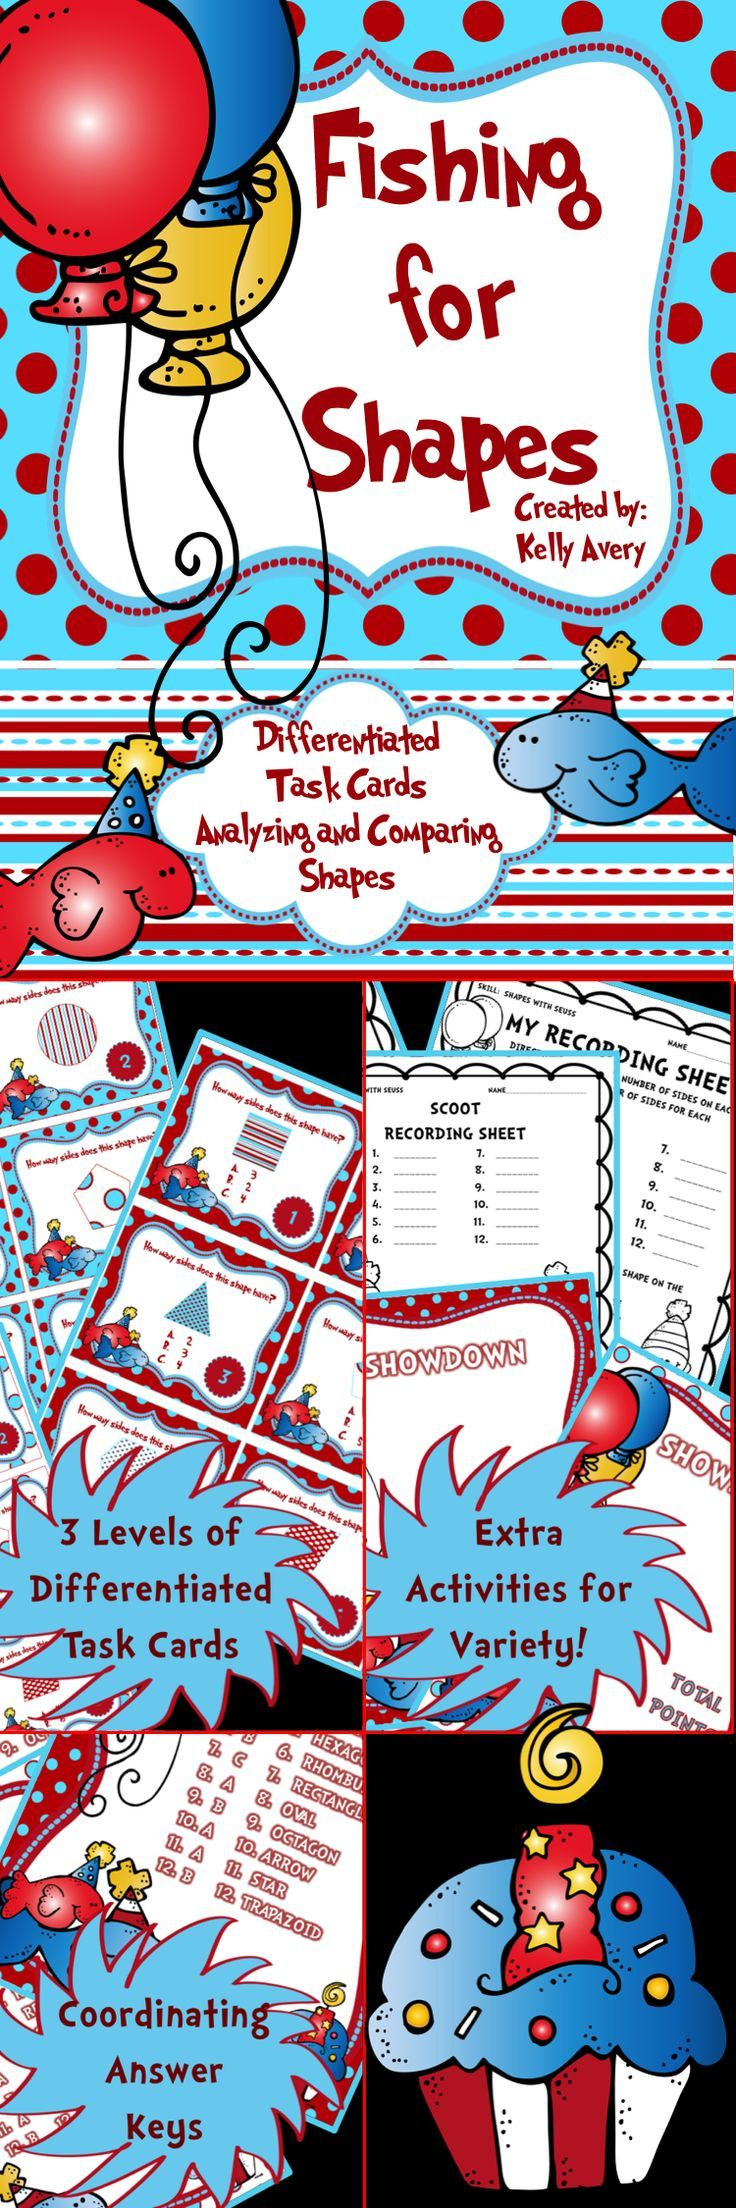 Teaching preschool and kindergarten students how to identify shapes can easily be done with the variety of fun activities included in this math product!  Click here to discover the many possibilities of incorporating these whimsical shape task cards into your math lessons!  Perfect for math centers, partner activities, whole group math lessons using Kagan Structures, fast finisher activities, RTI, The Daily 3 activities, and so much more!